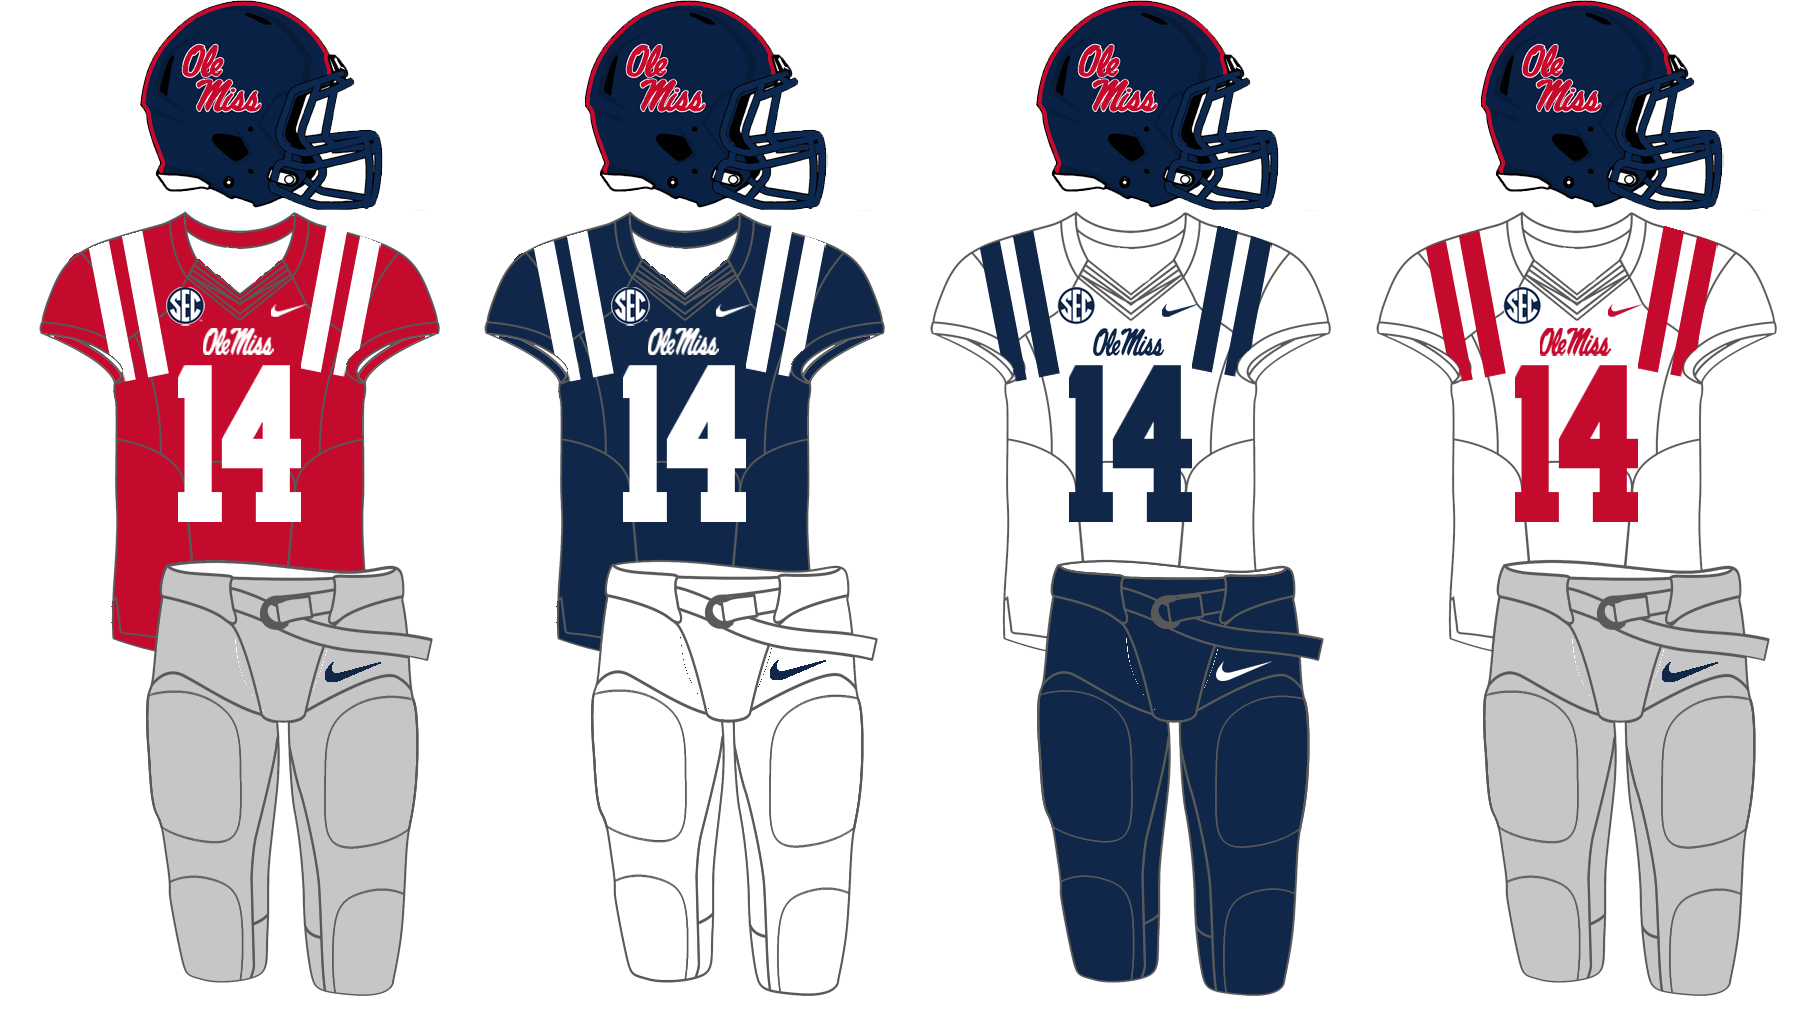 91a393de4 File Ole Miss 2013 Football Uniforms.png - Wikimedia Commons